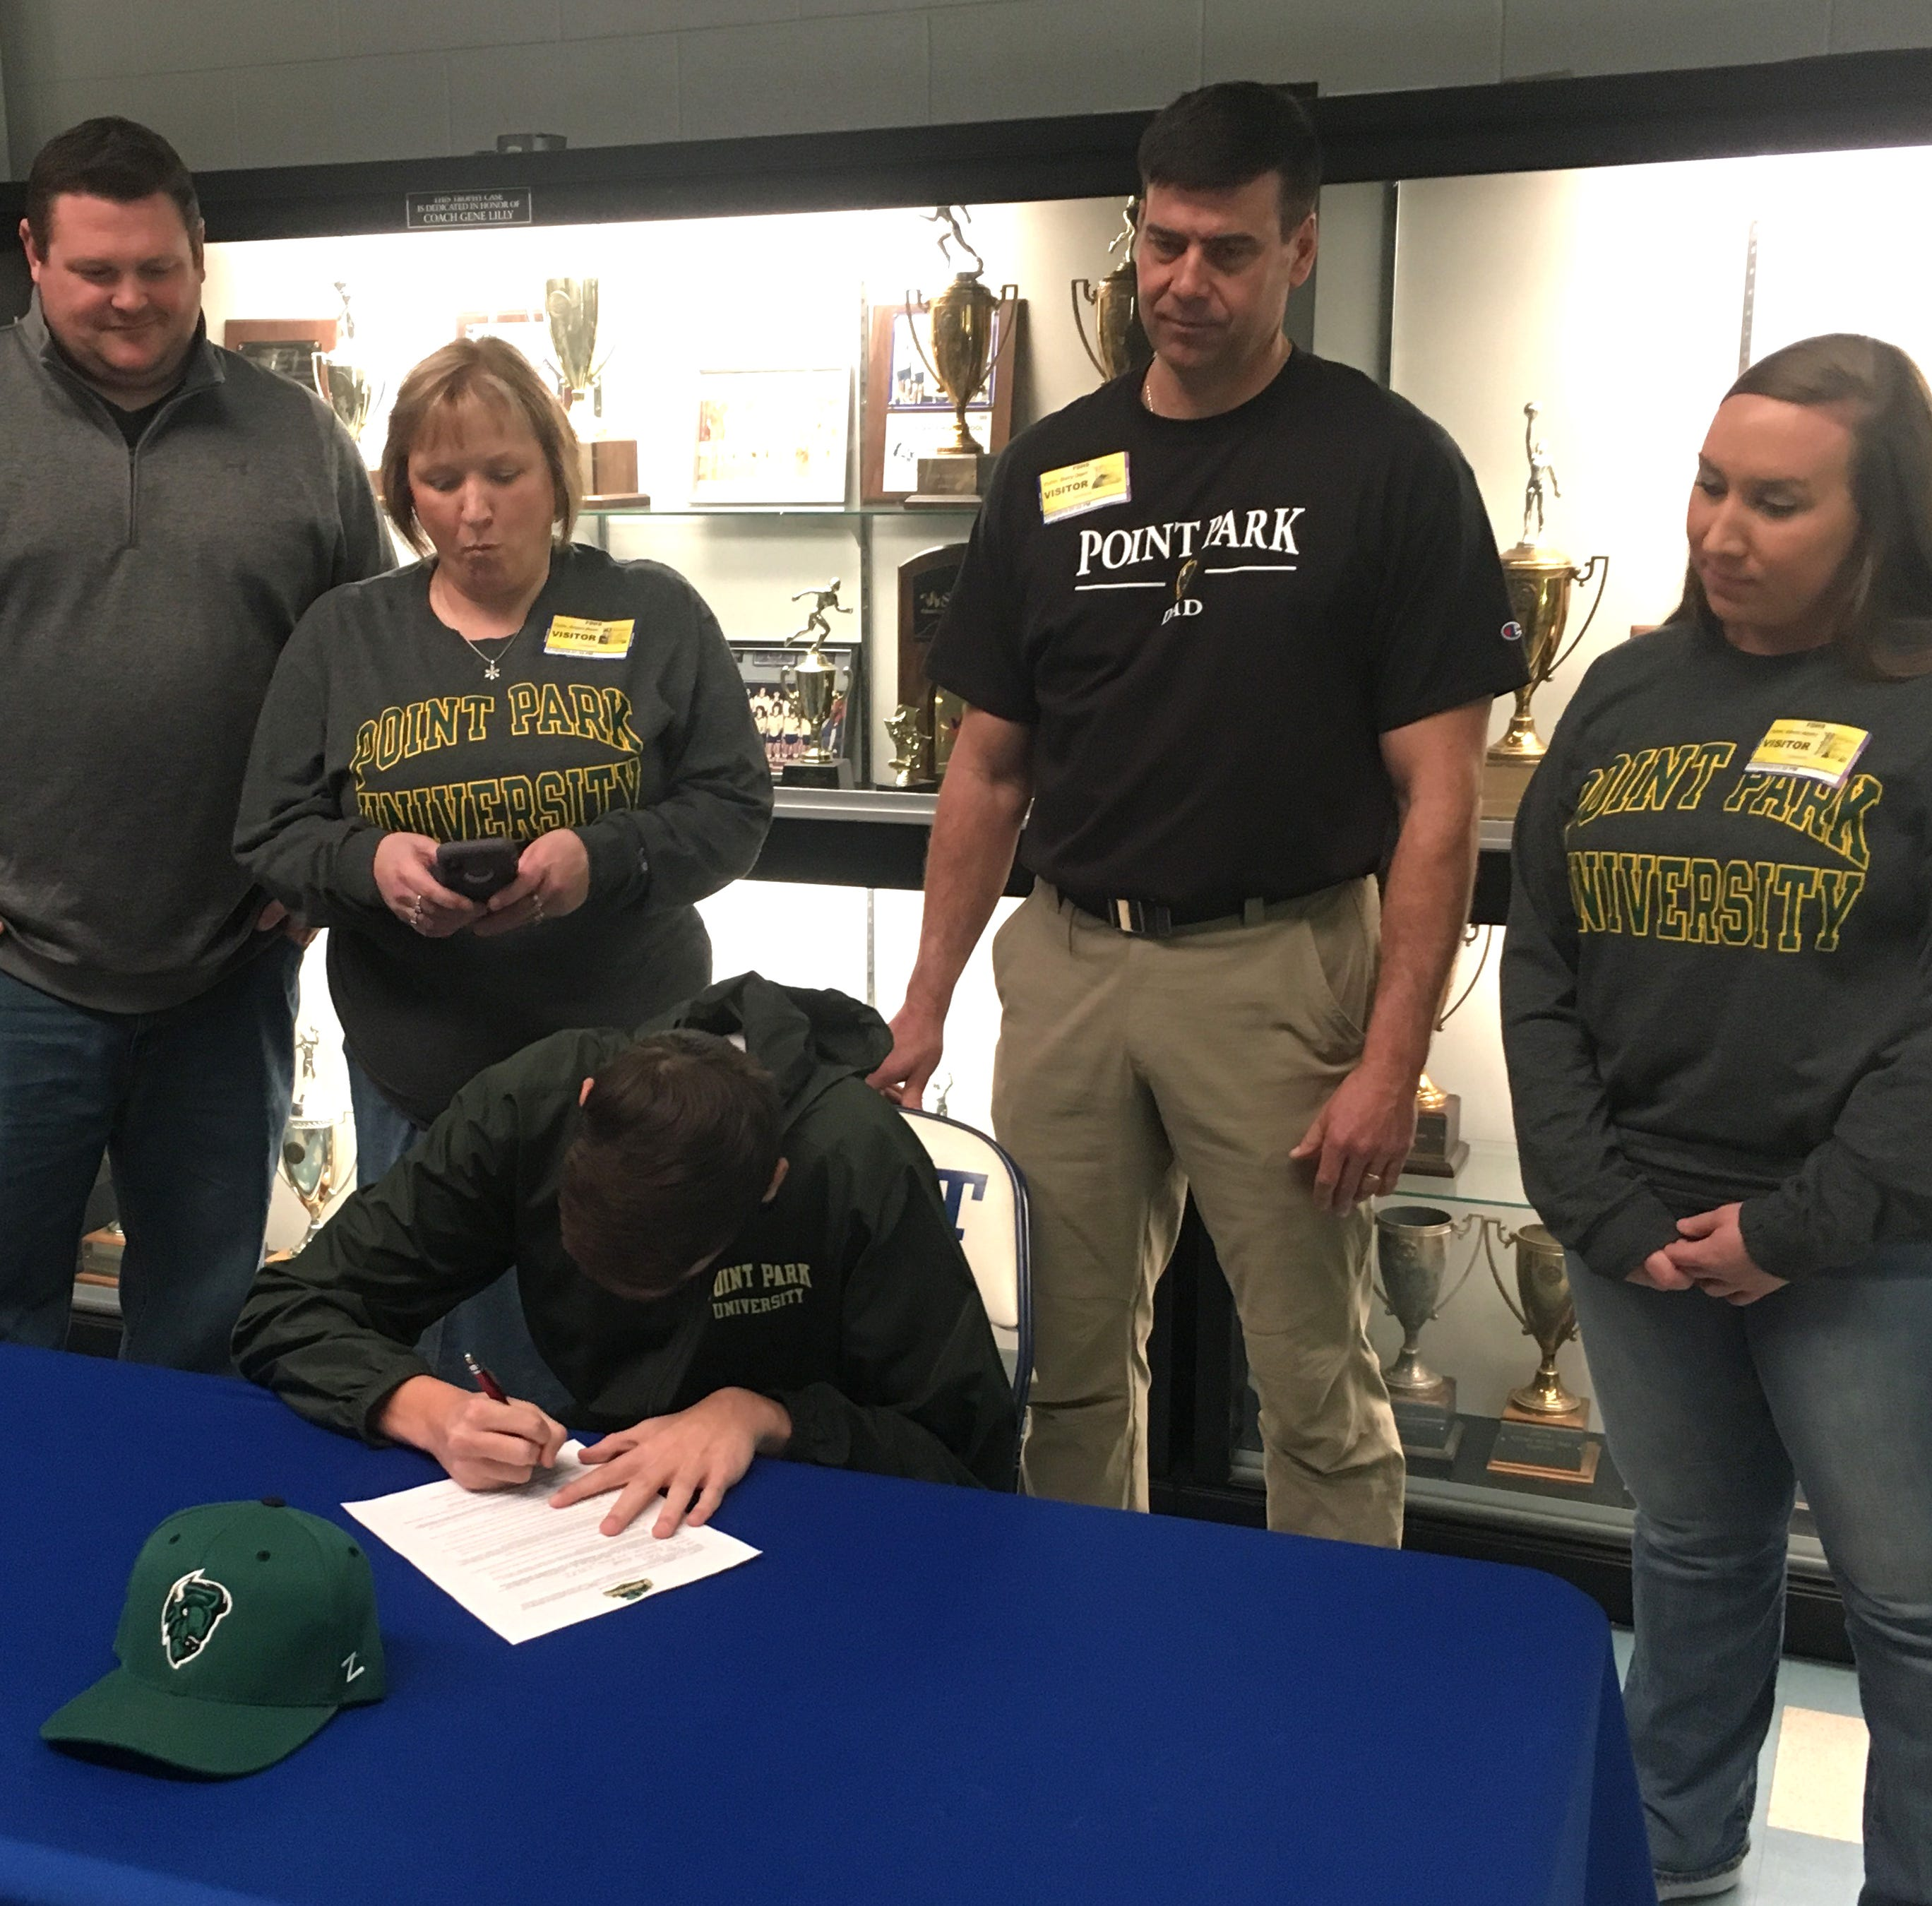 Fort Defiance's Pullin signs with Point Park